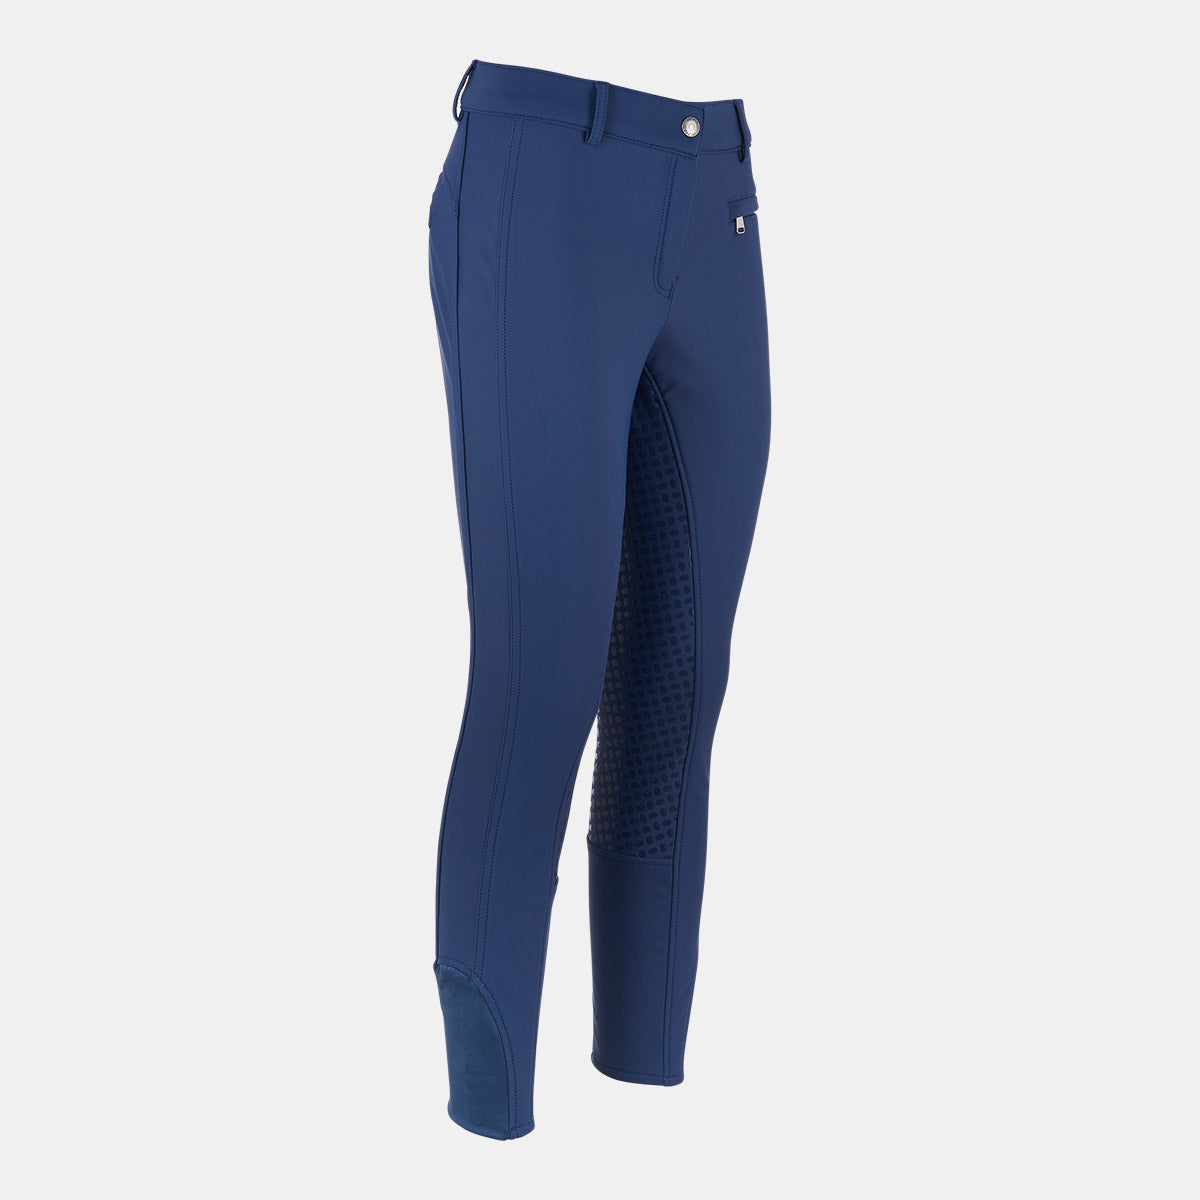 HV Polo Laura FSS Winter Breech in Indigo